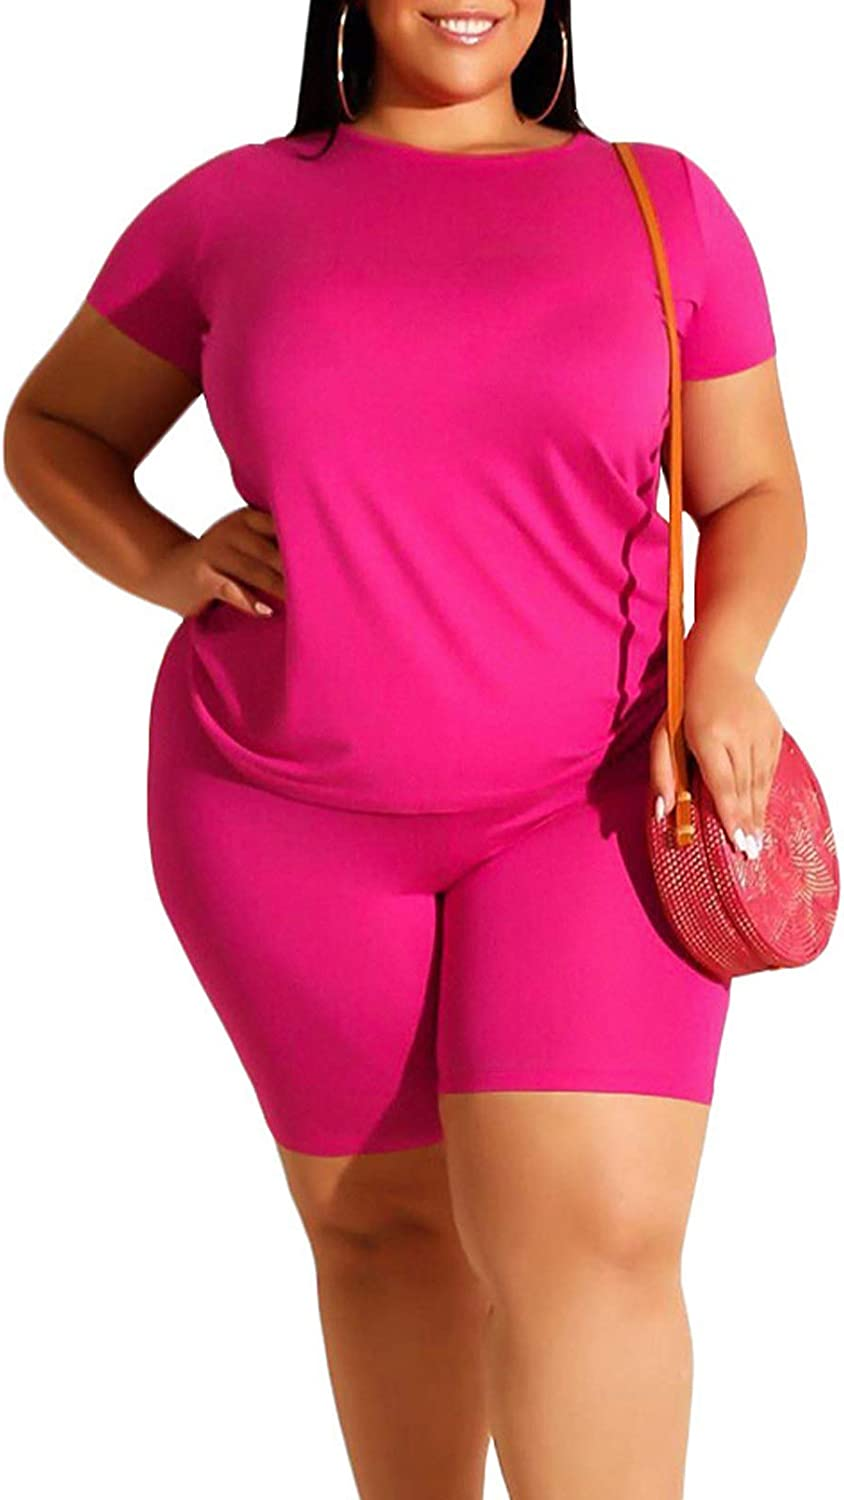 Linsery Women Plus Size 2 Piece Outfit T-Shirt Top and Shorts Casual Sweatsuit Set